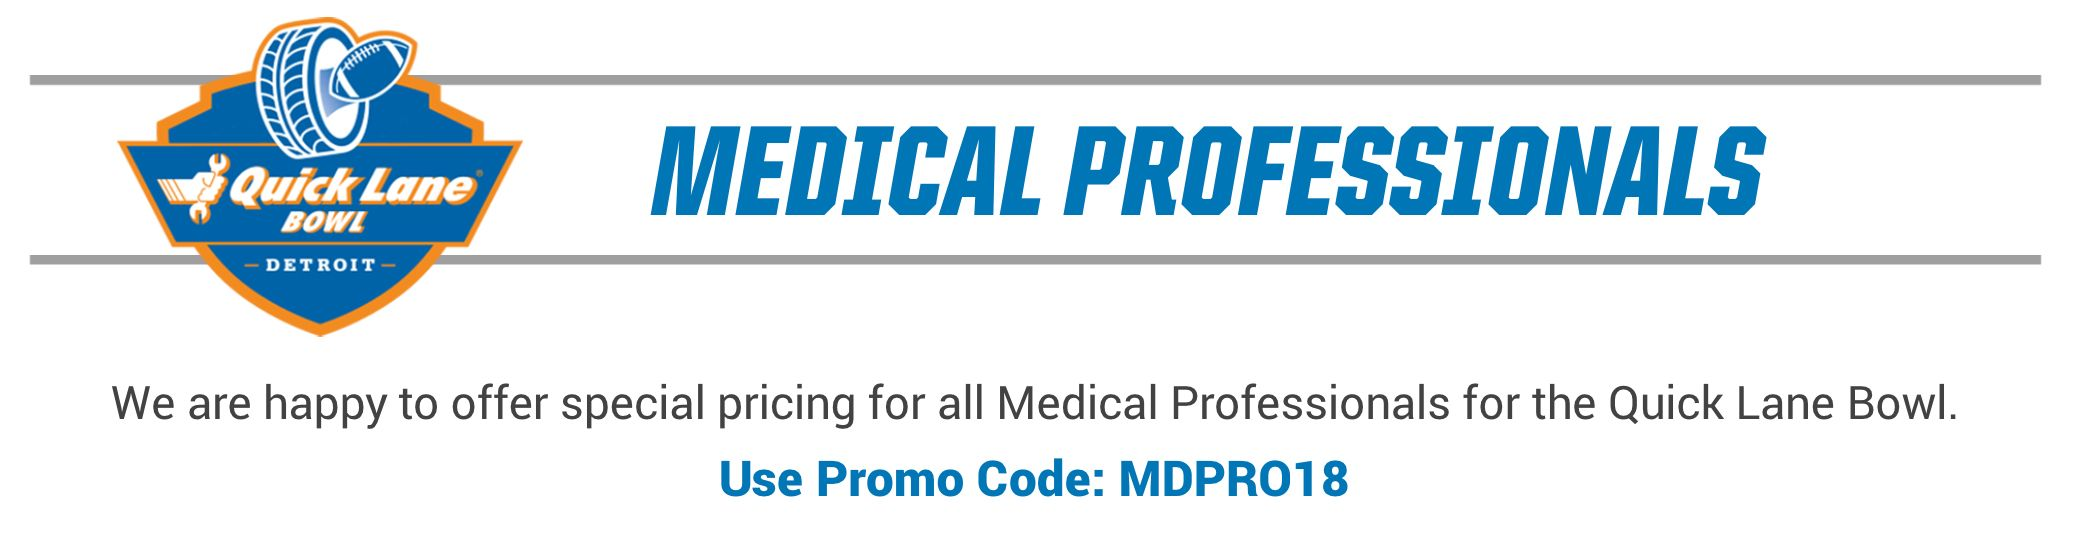 qlb-medical-professionals-header